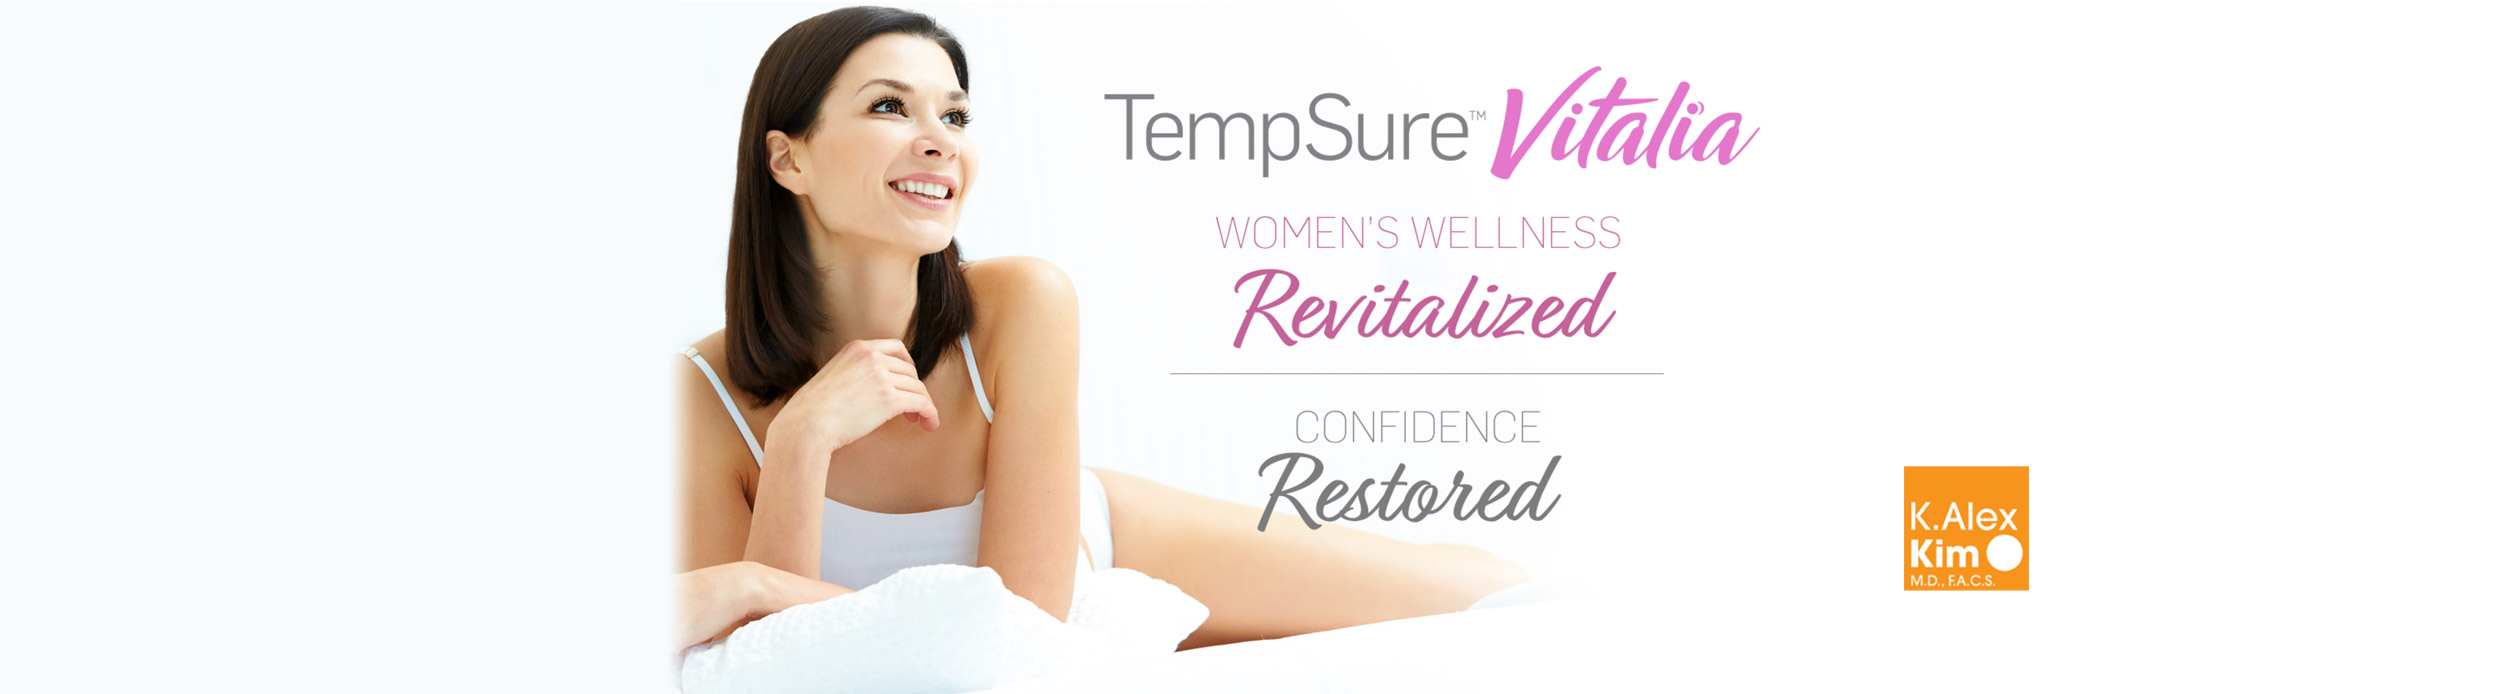 TempSure Vitalia is now FDA-approved RF treatment for vagina and labia